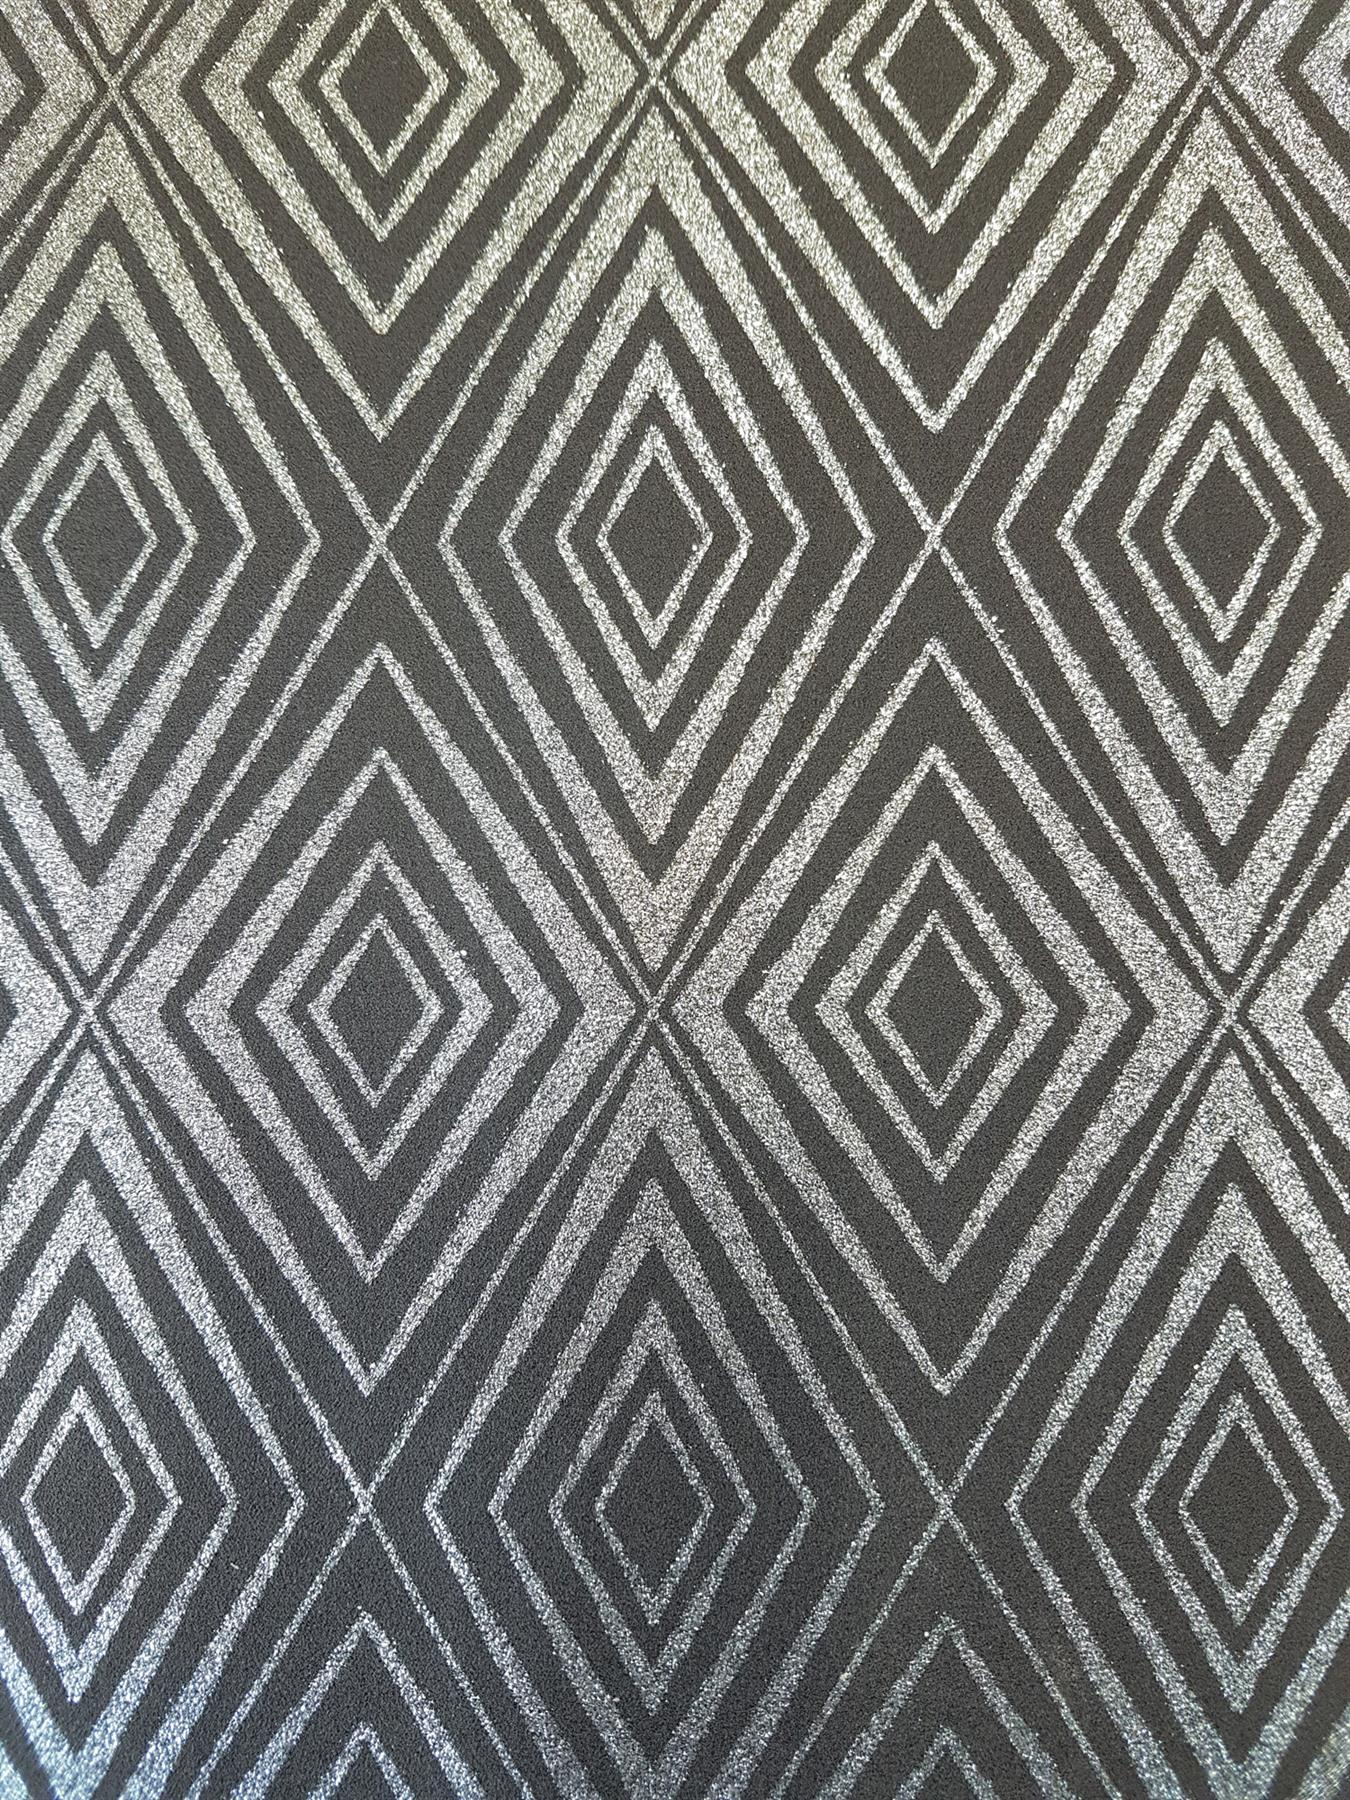 Details About Ps Diamond Black Silver Geometric Glitter Wallpaper Shimmer Sparkle Paste Wall